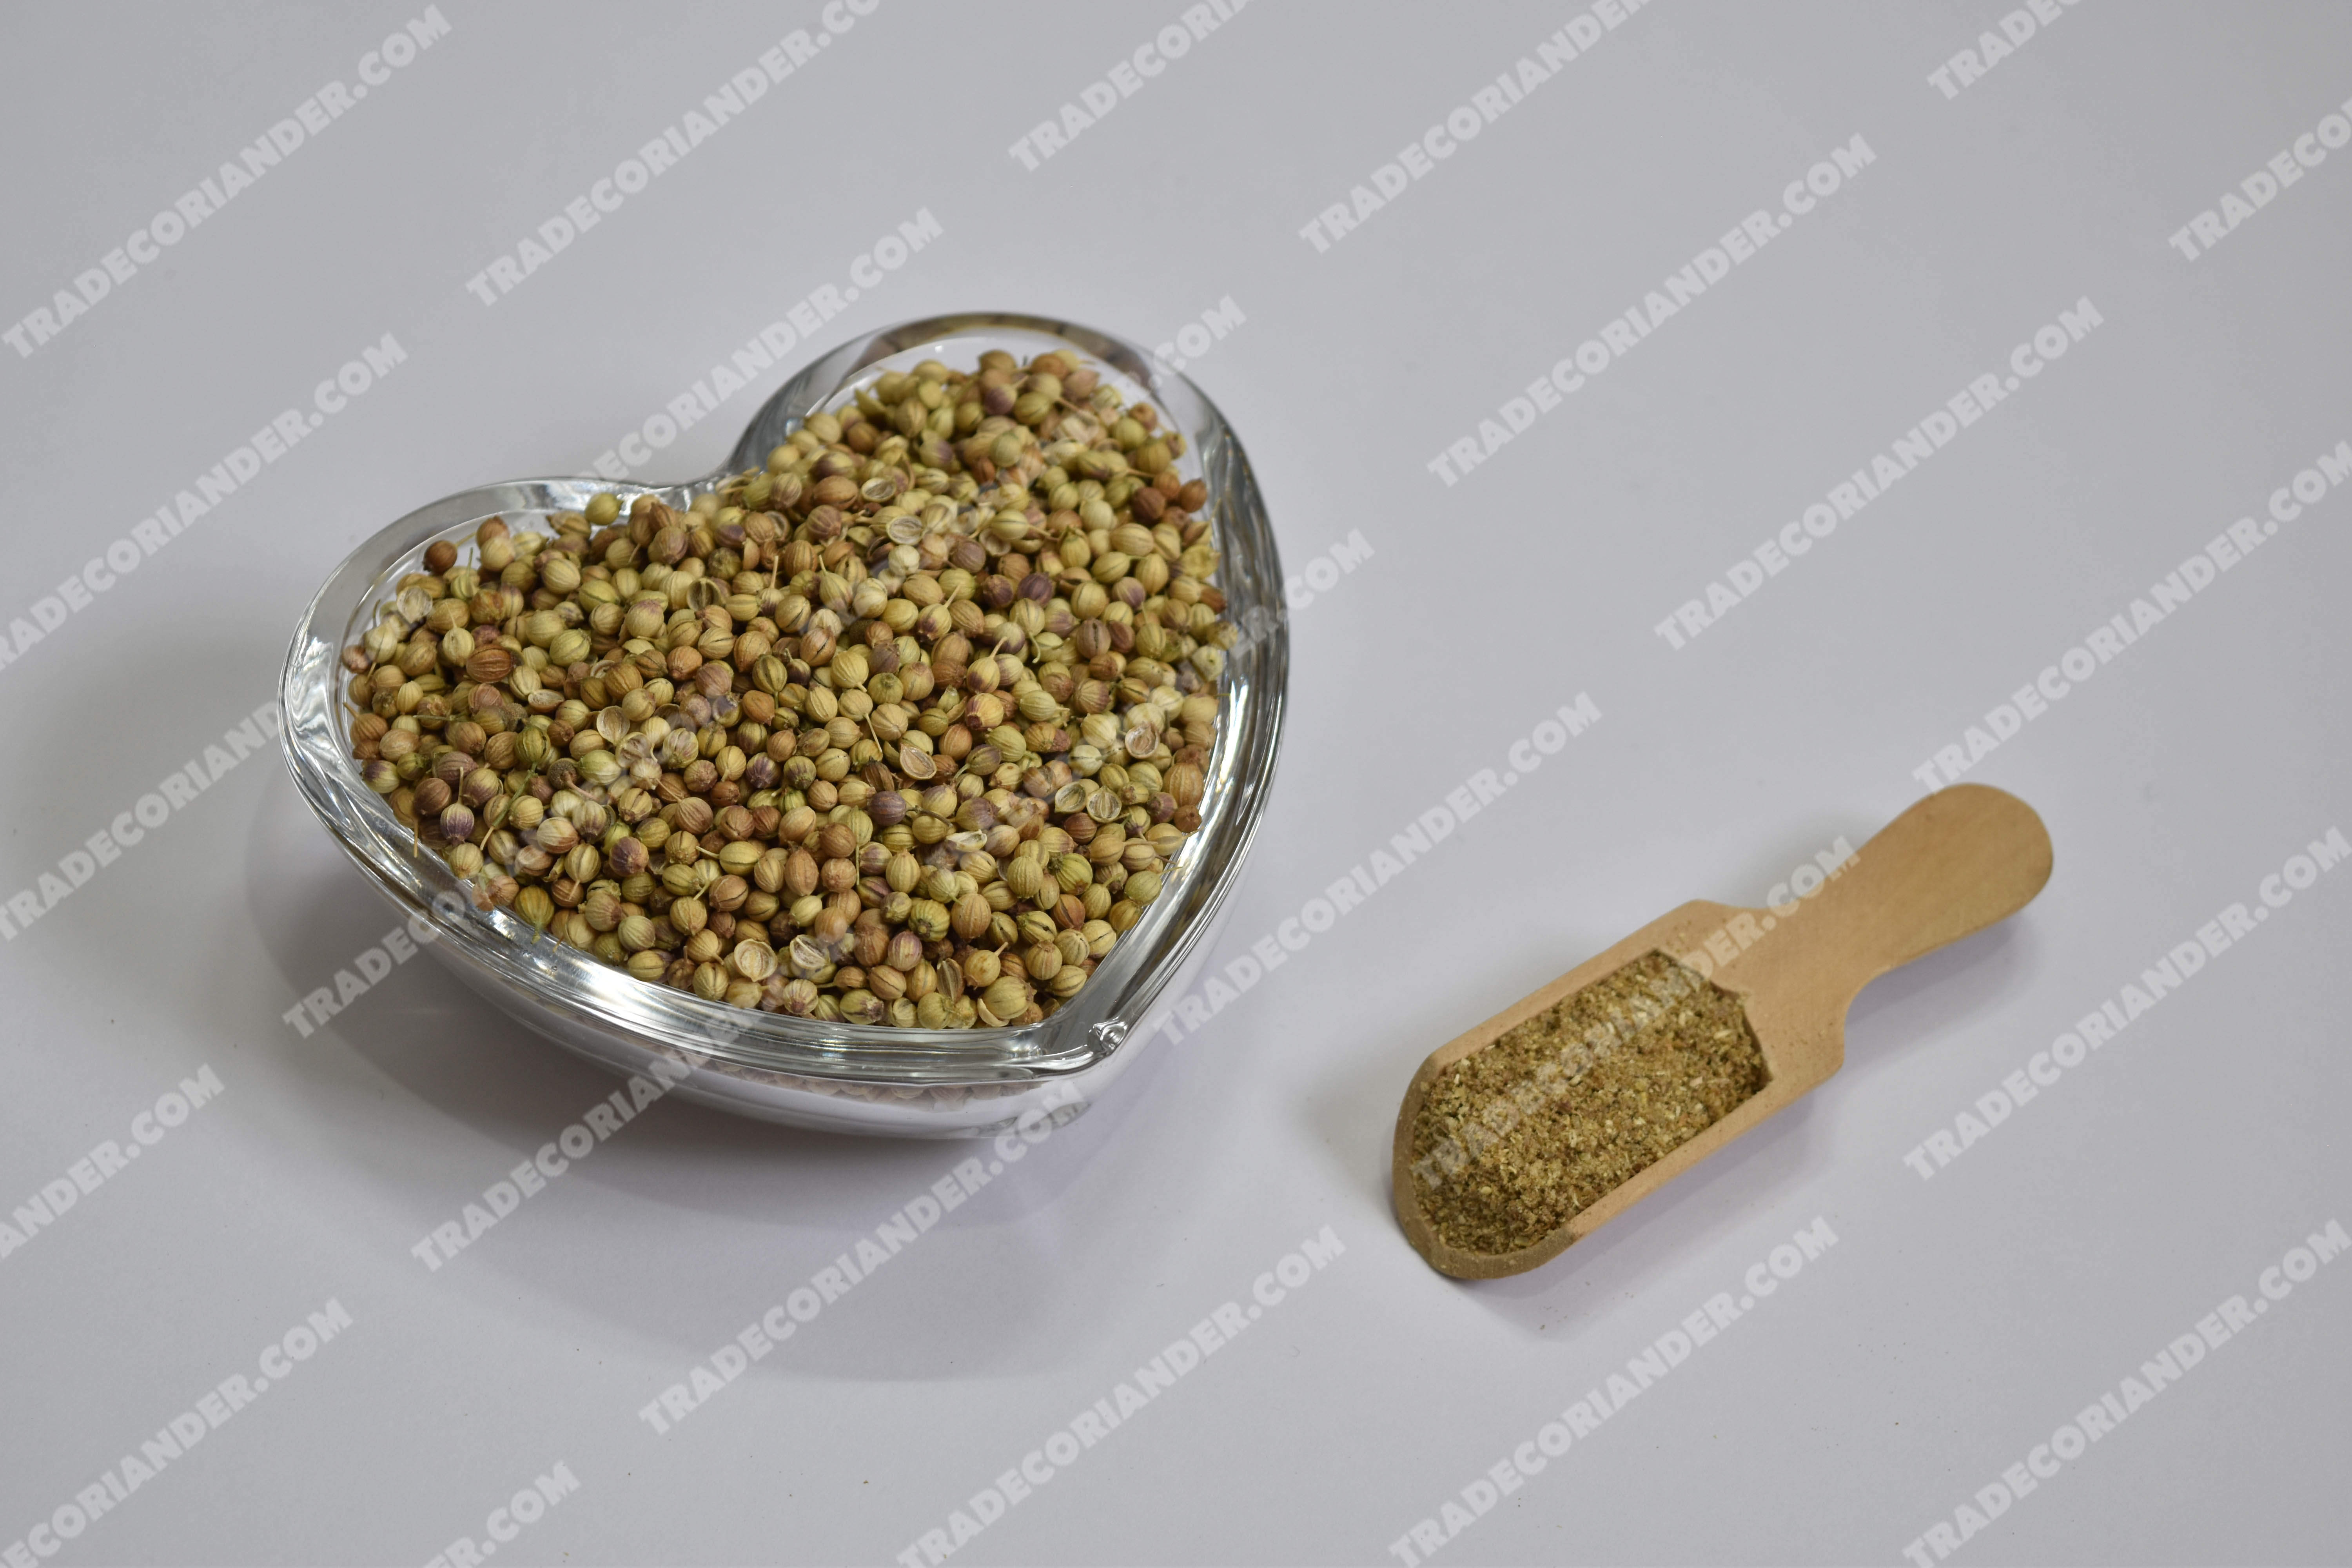 Which country has cheapest coriander seed price today?